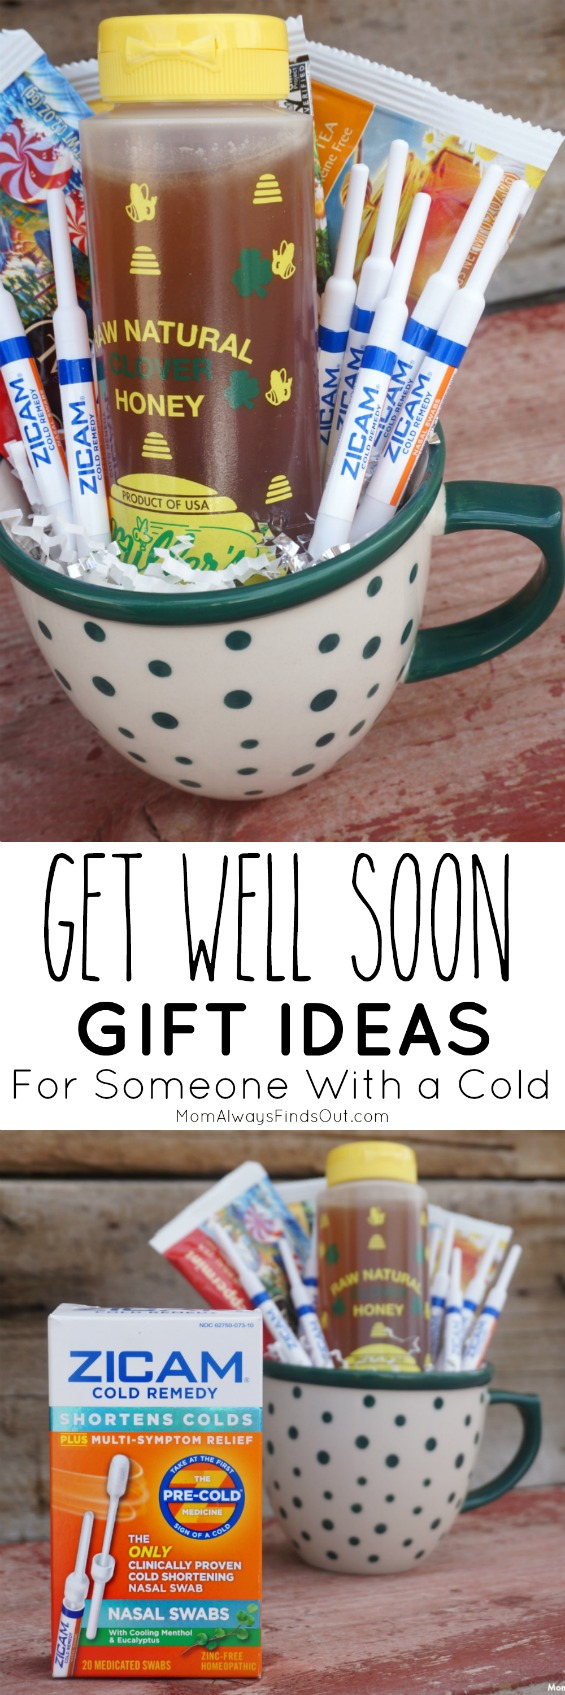 Get Well Soon Gifts For a Cold with Zicam Cold Remedy #ZicamCrowd